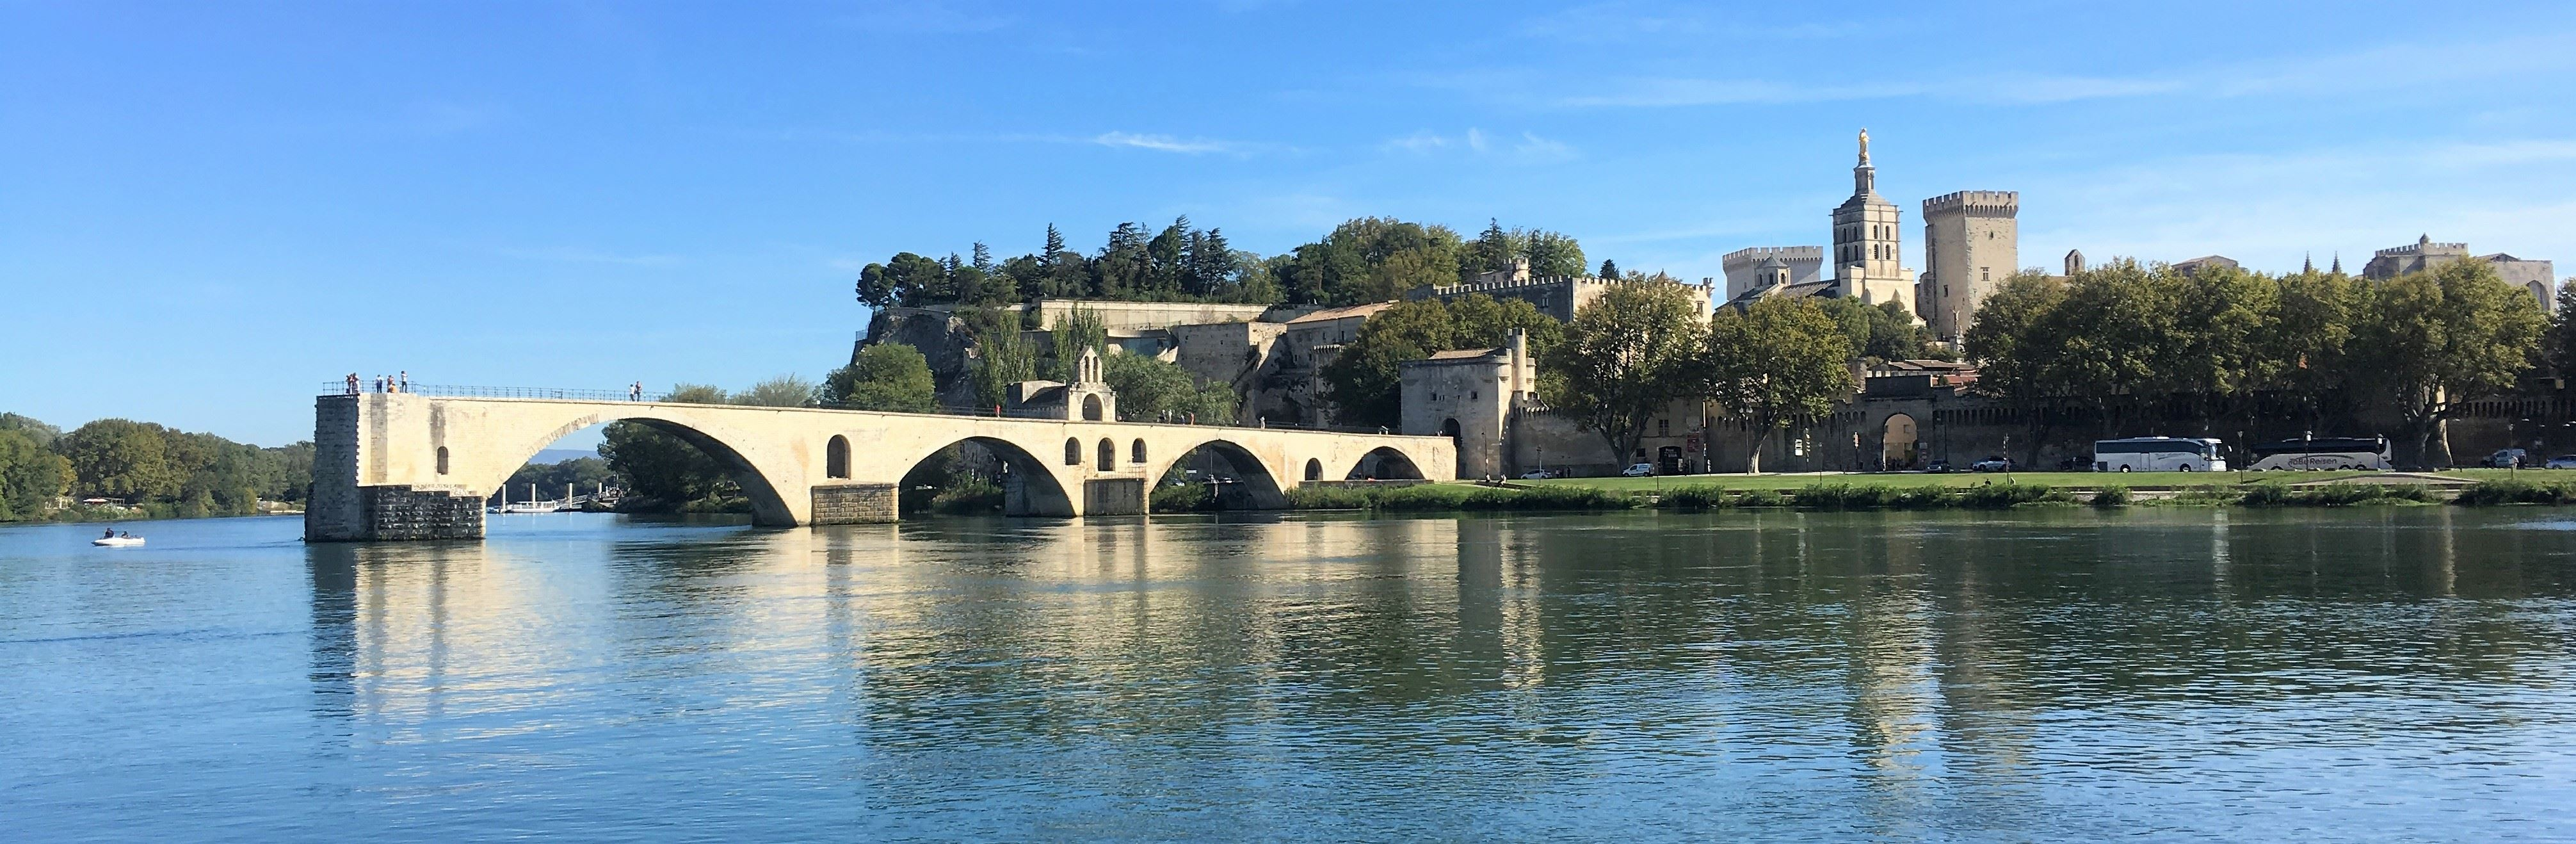 Visit of the Saint Bénezet bridge